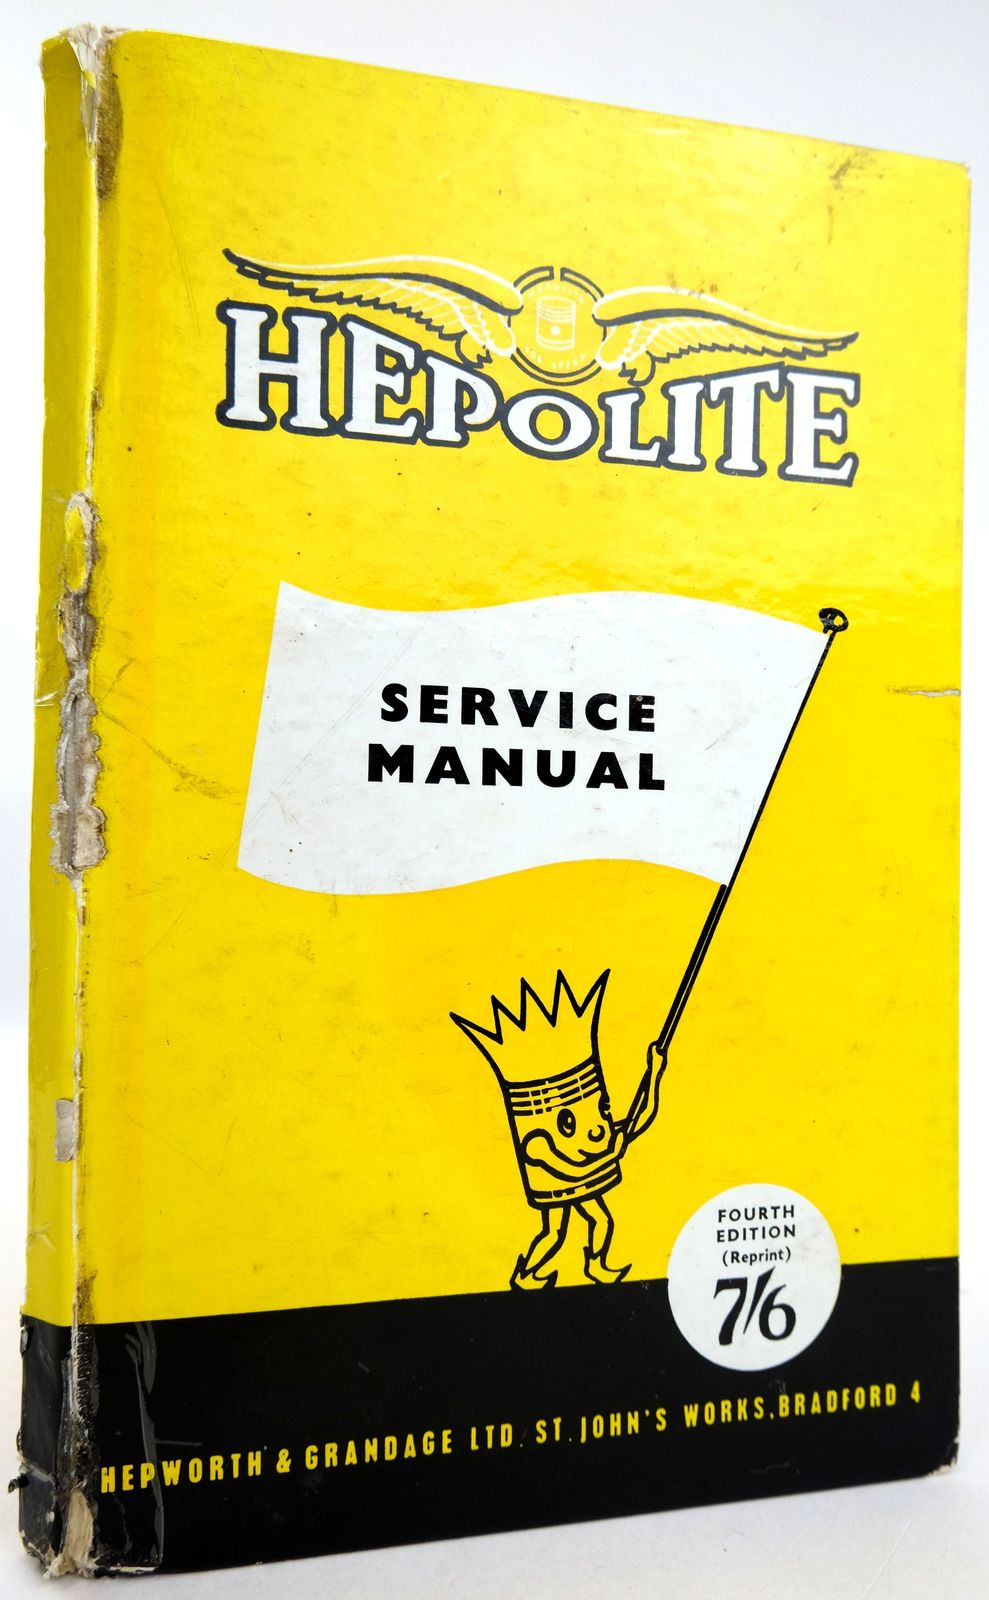 Photo of HEPOLITE SERVICE MANUAL published by Hepworth & Grandage Ltd. (STOCK CODE: 1819589)  for sale by Stella & Rose's Books